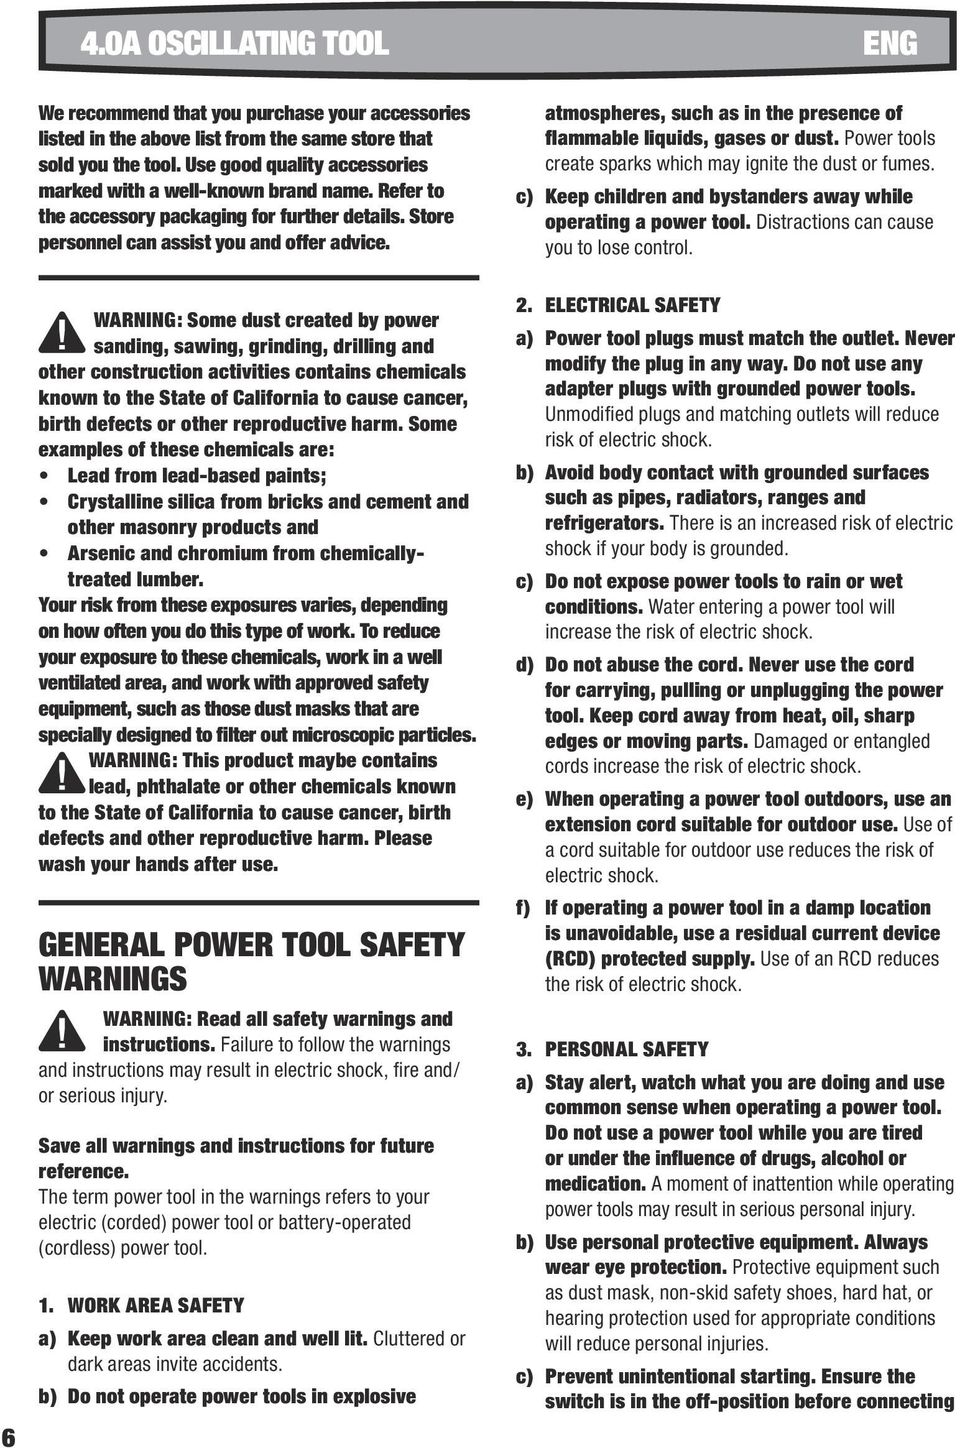 WARNING: Some dust created by power sanding, sawing, grinding, drilling and other construction activities contains chemicals known to the State of California to cause cancer, birth defects or other